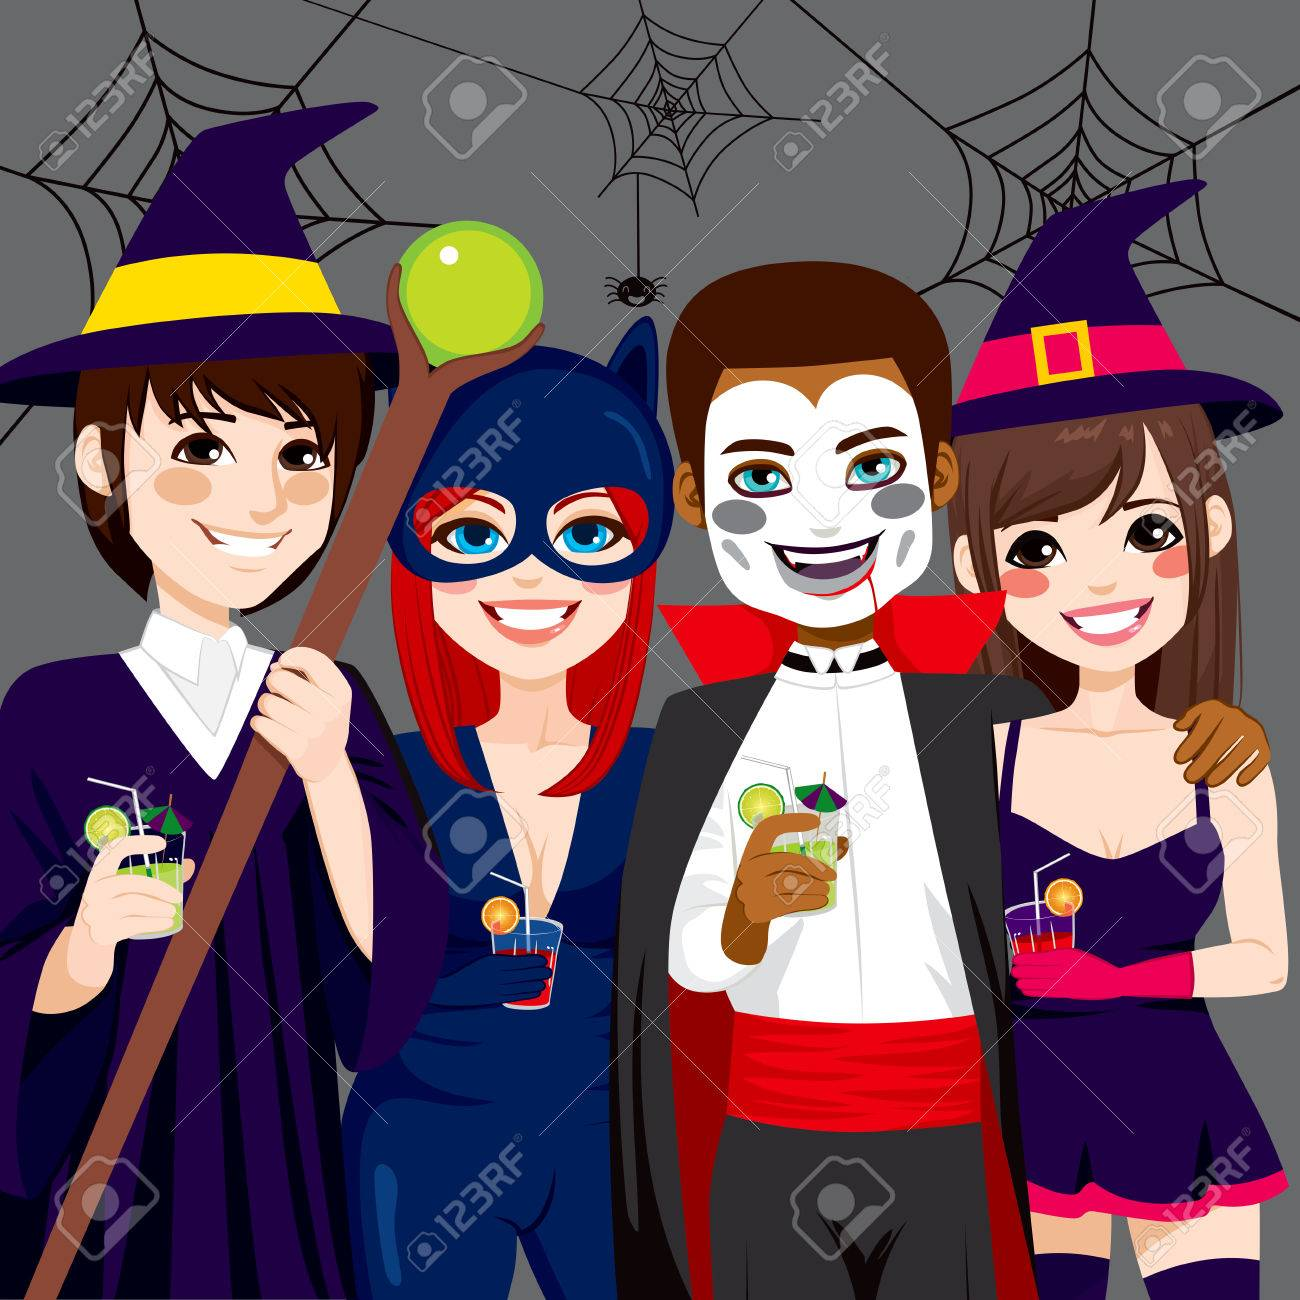 Small group of young adult people enjoying Halloween costume party while drinking Stock Vector - 46728230 & Small Group Of Young Adult People Enjoying Halloween Costume ...